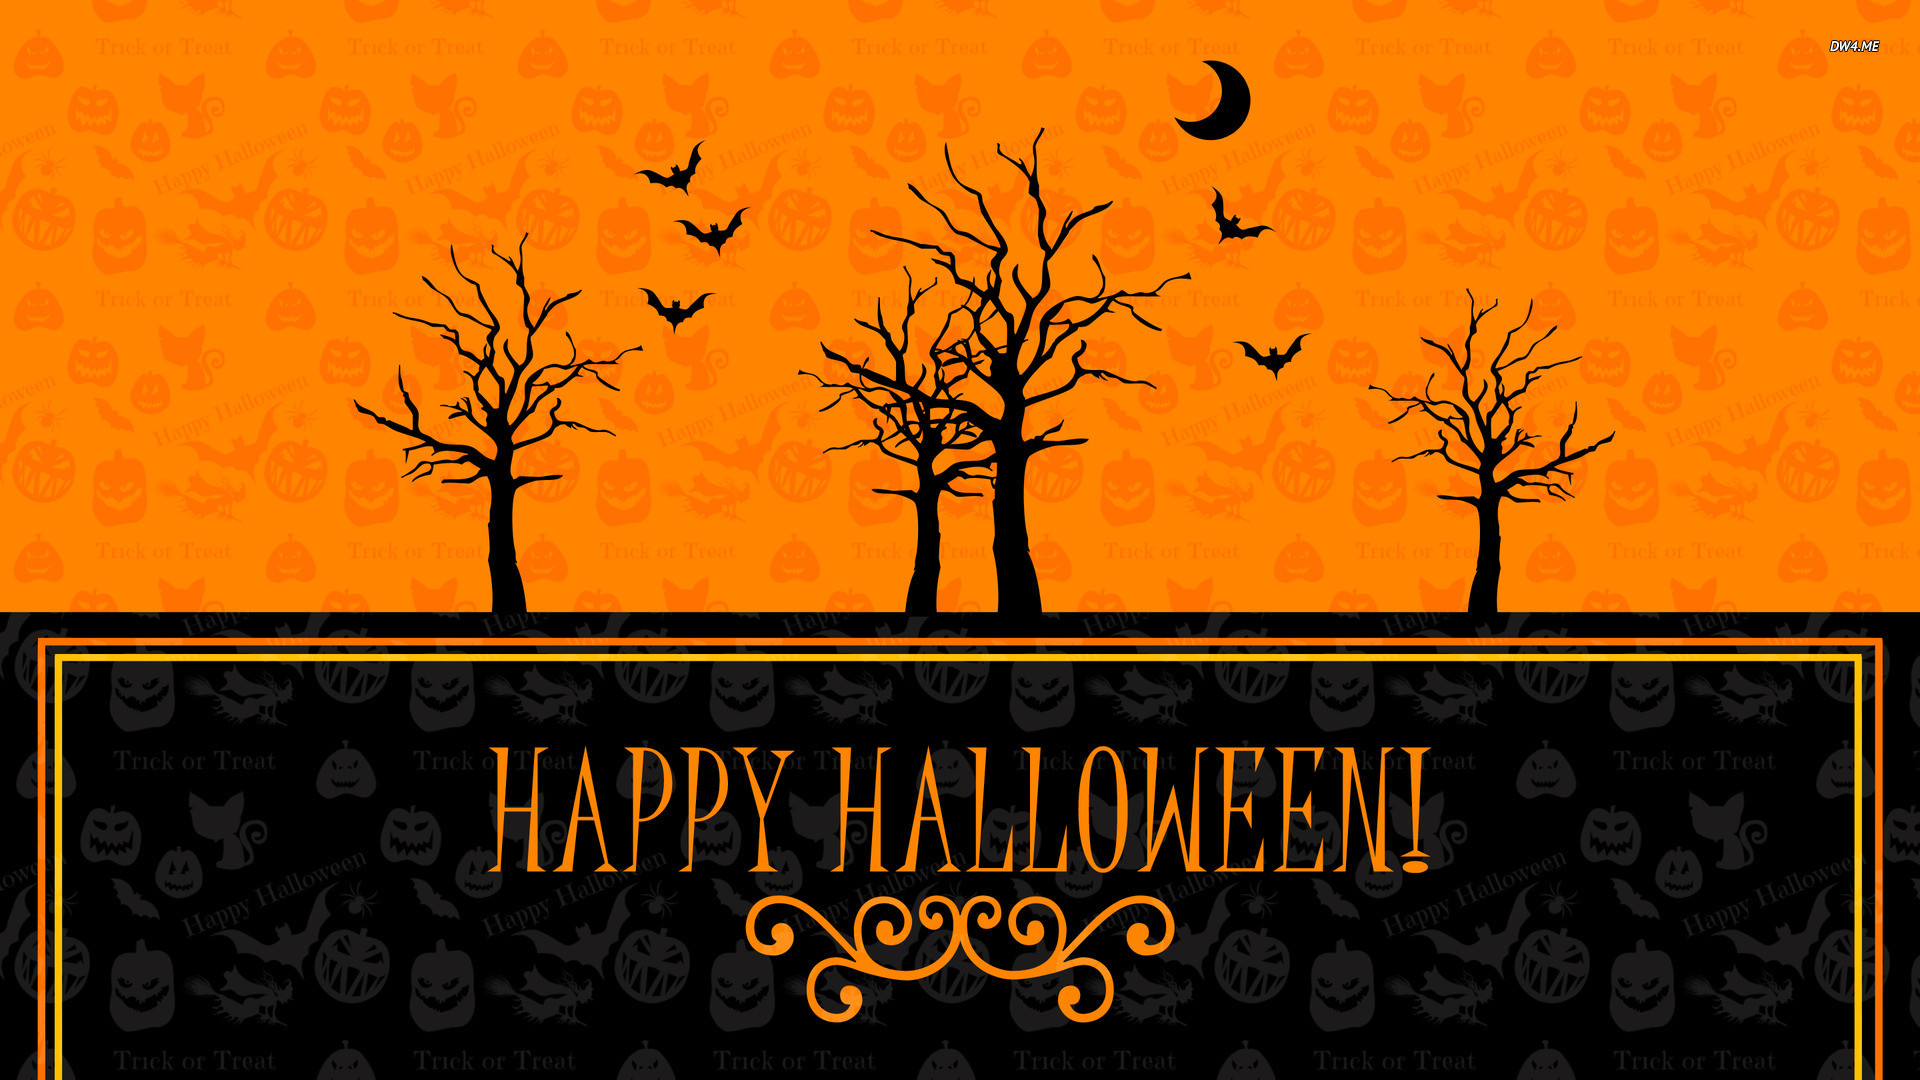 Wallpaper Halloween Pictures 80 images 1920x1080